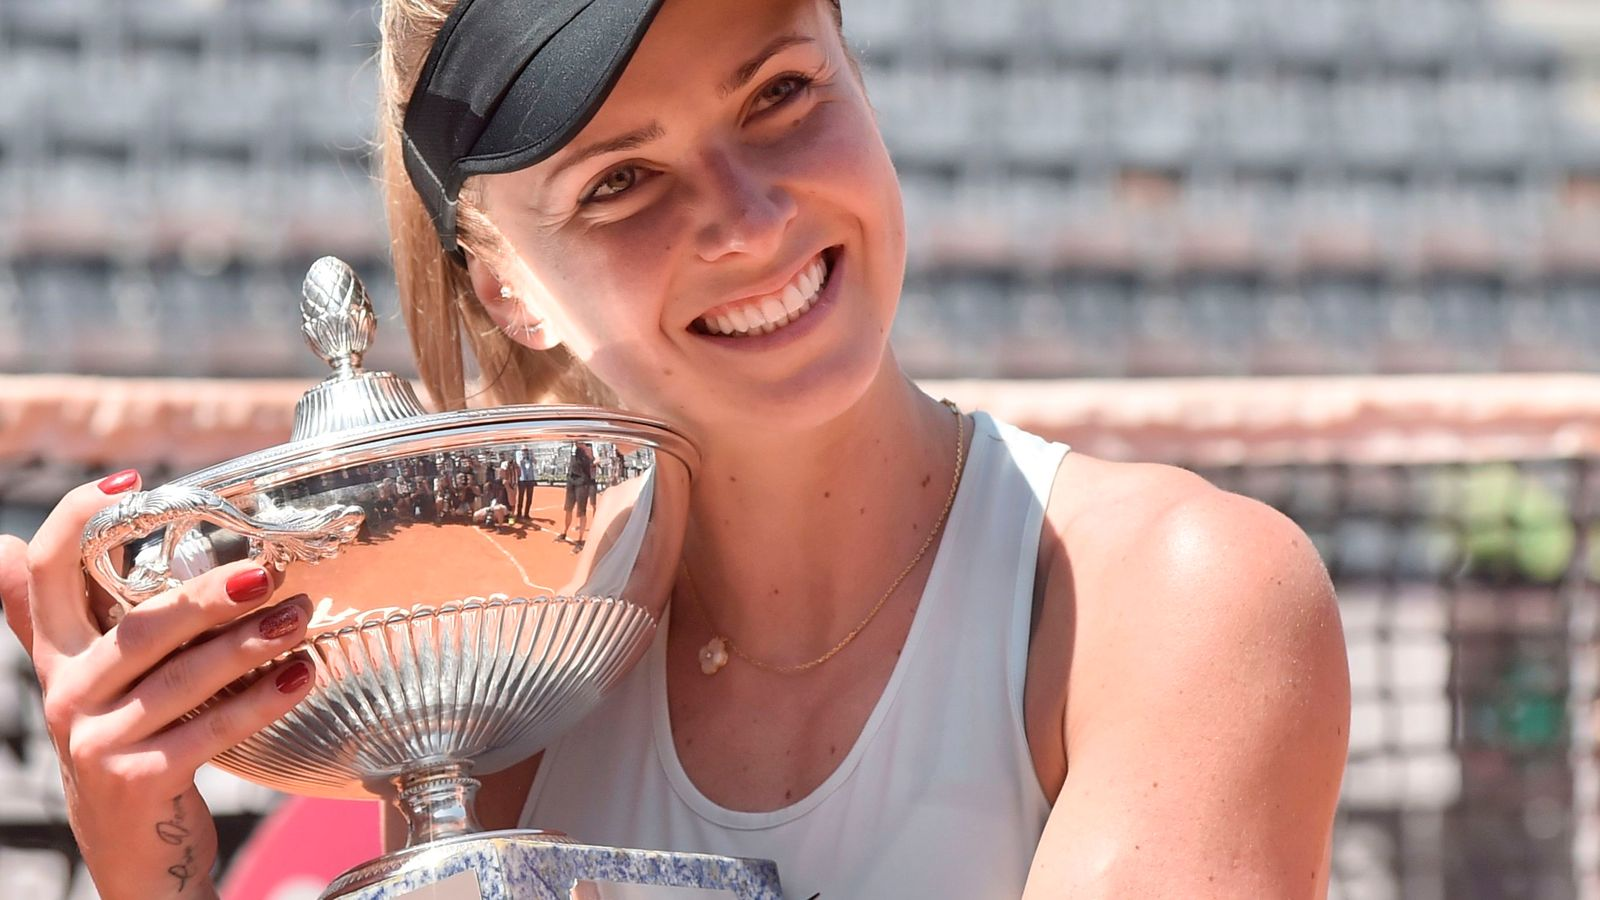 Elina Svitolina warms up for French Open with win in